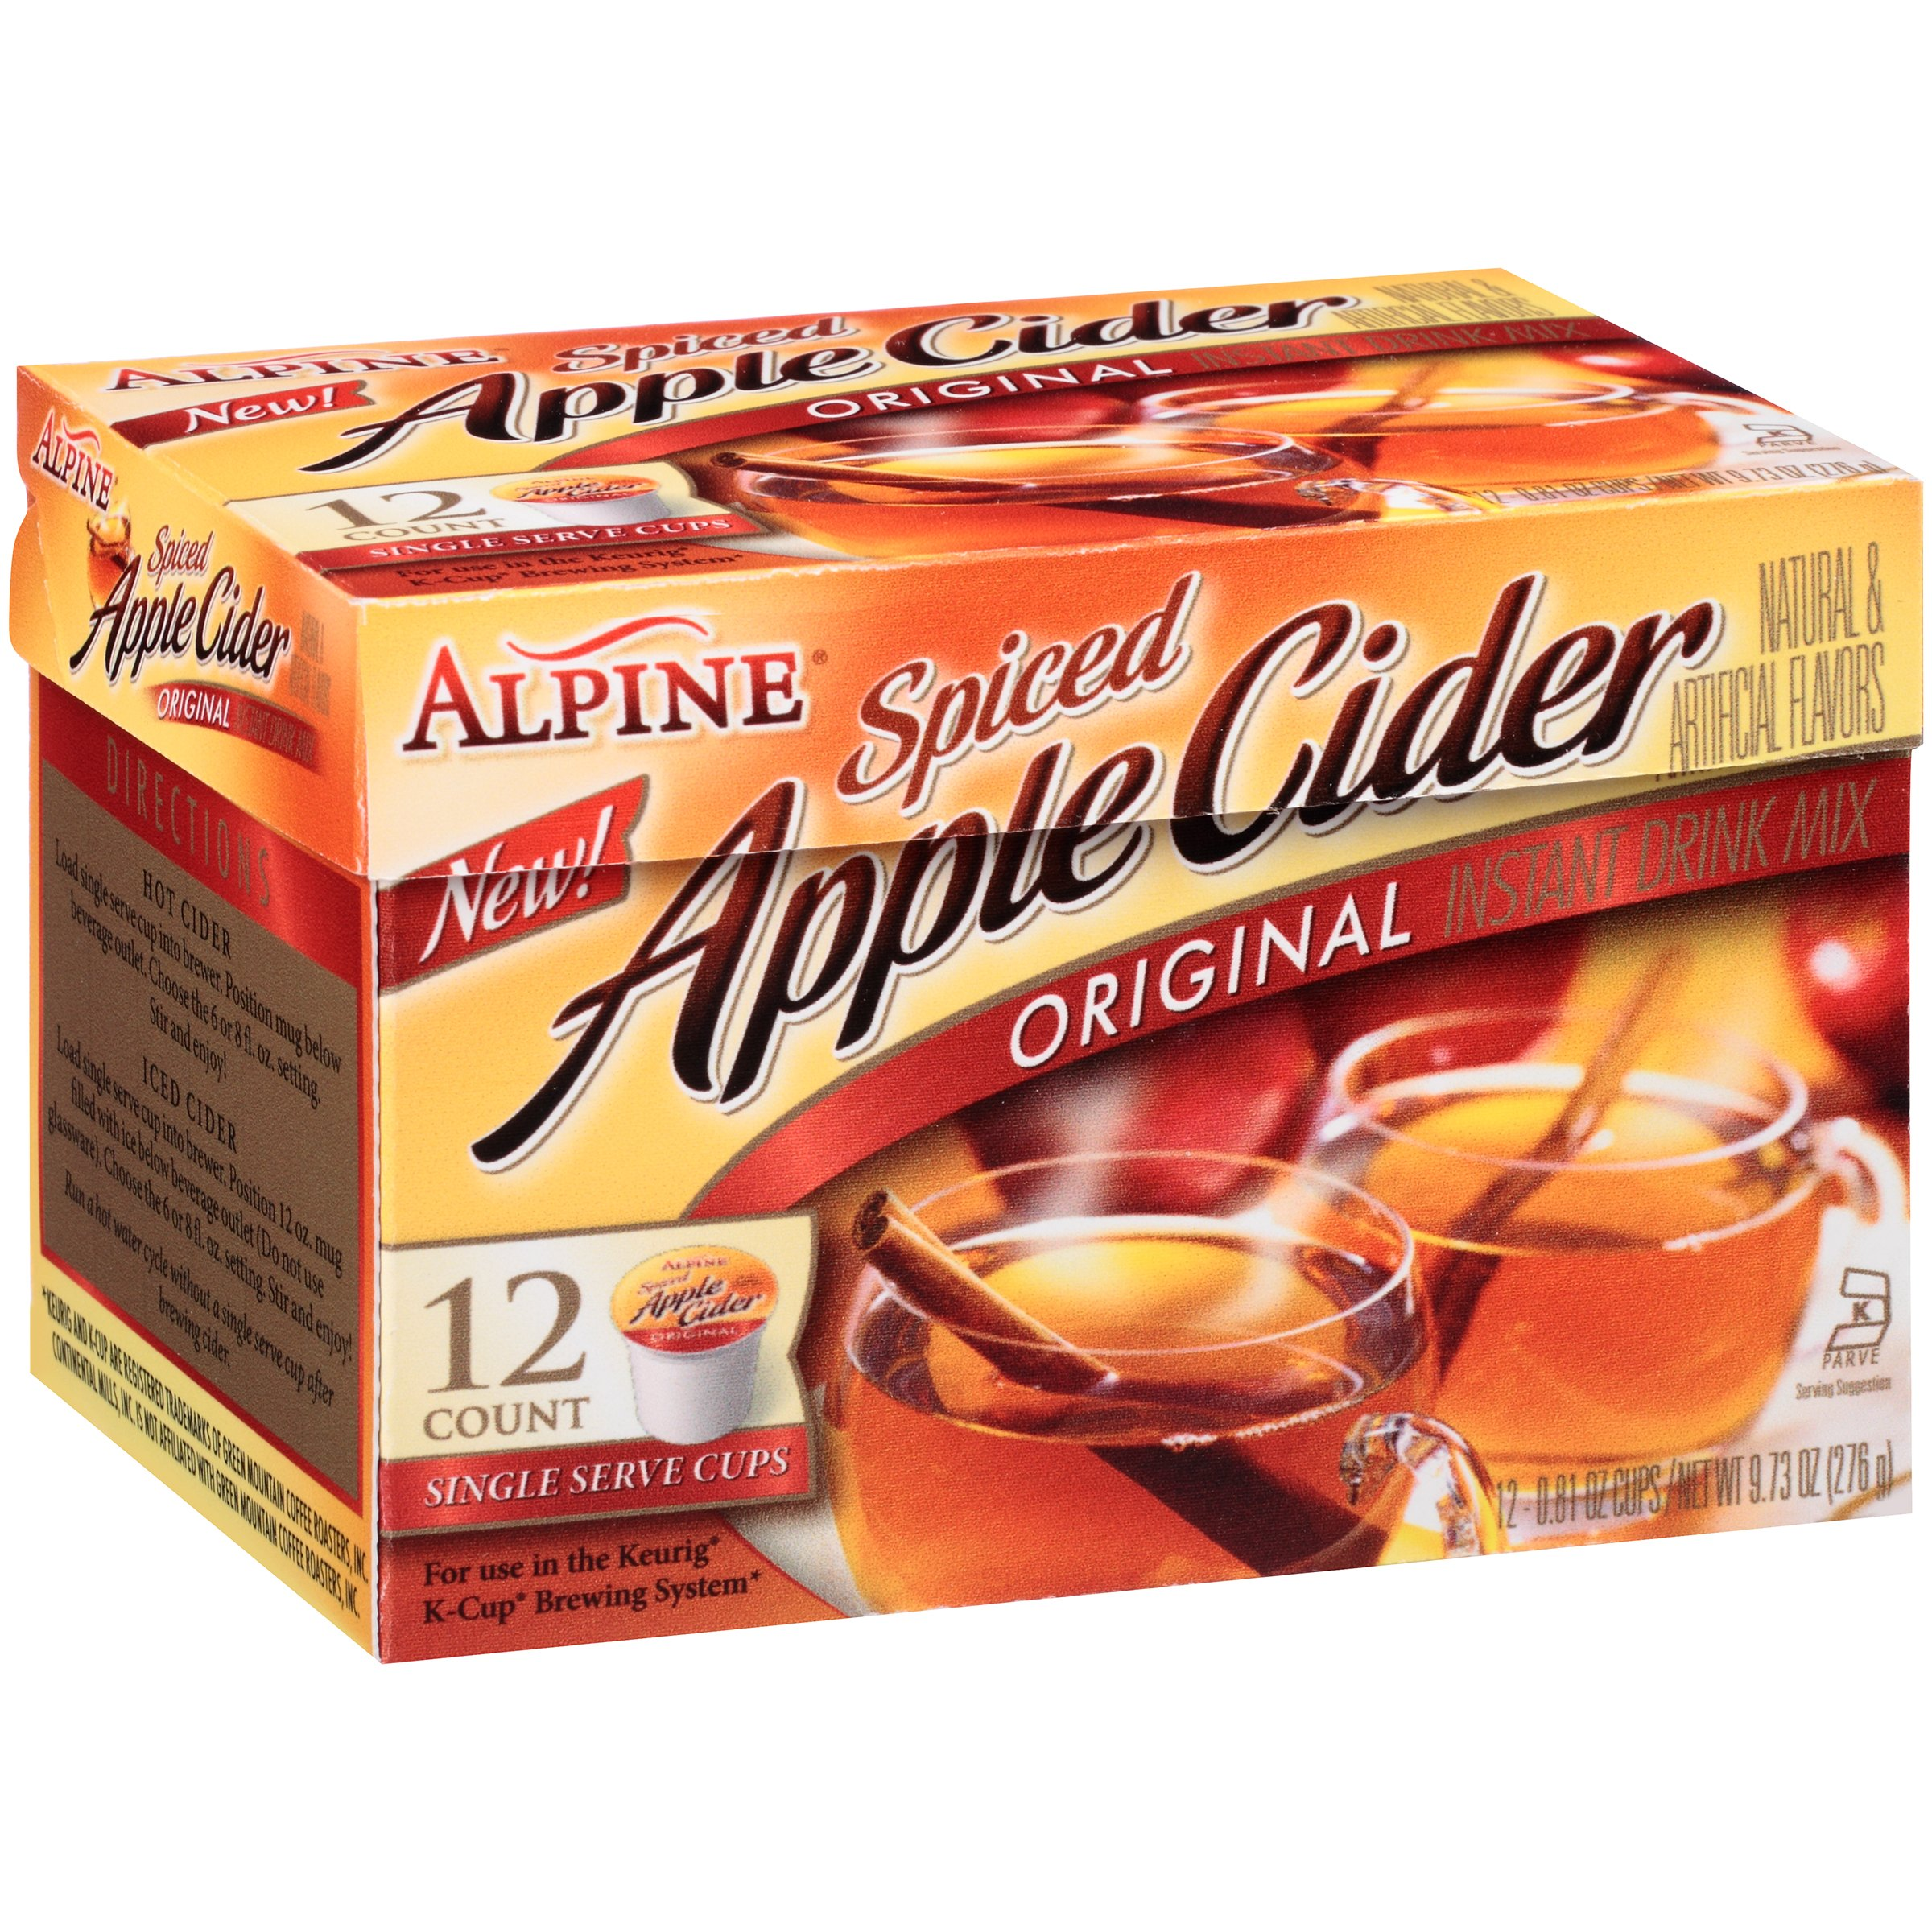 Alpine Original Spiced Apple Cider Instant Drink Mix 12-0.81 oz. Single-Serve Cups by Continental Mills